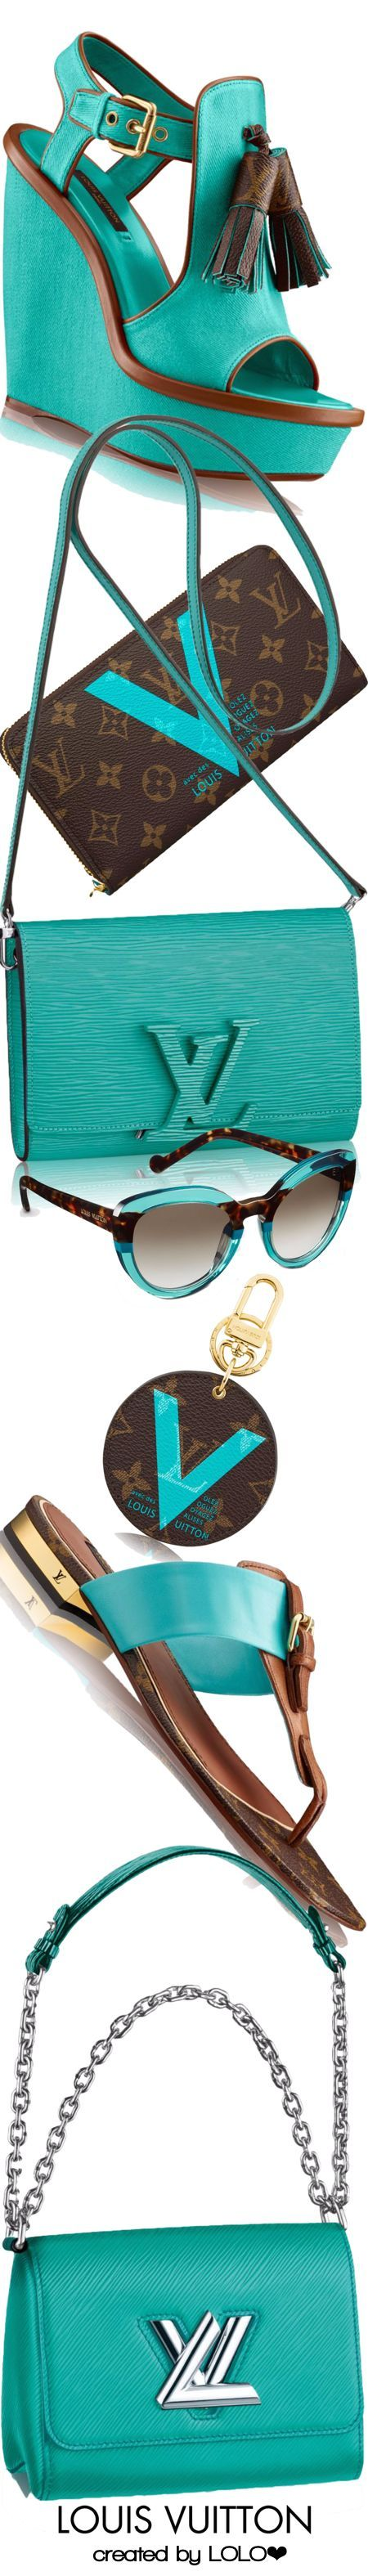 Louis Vuitton ~ Turquoise + Brown Leather Wedge, Sandals, Shoulder Bag, Wallet